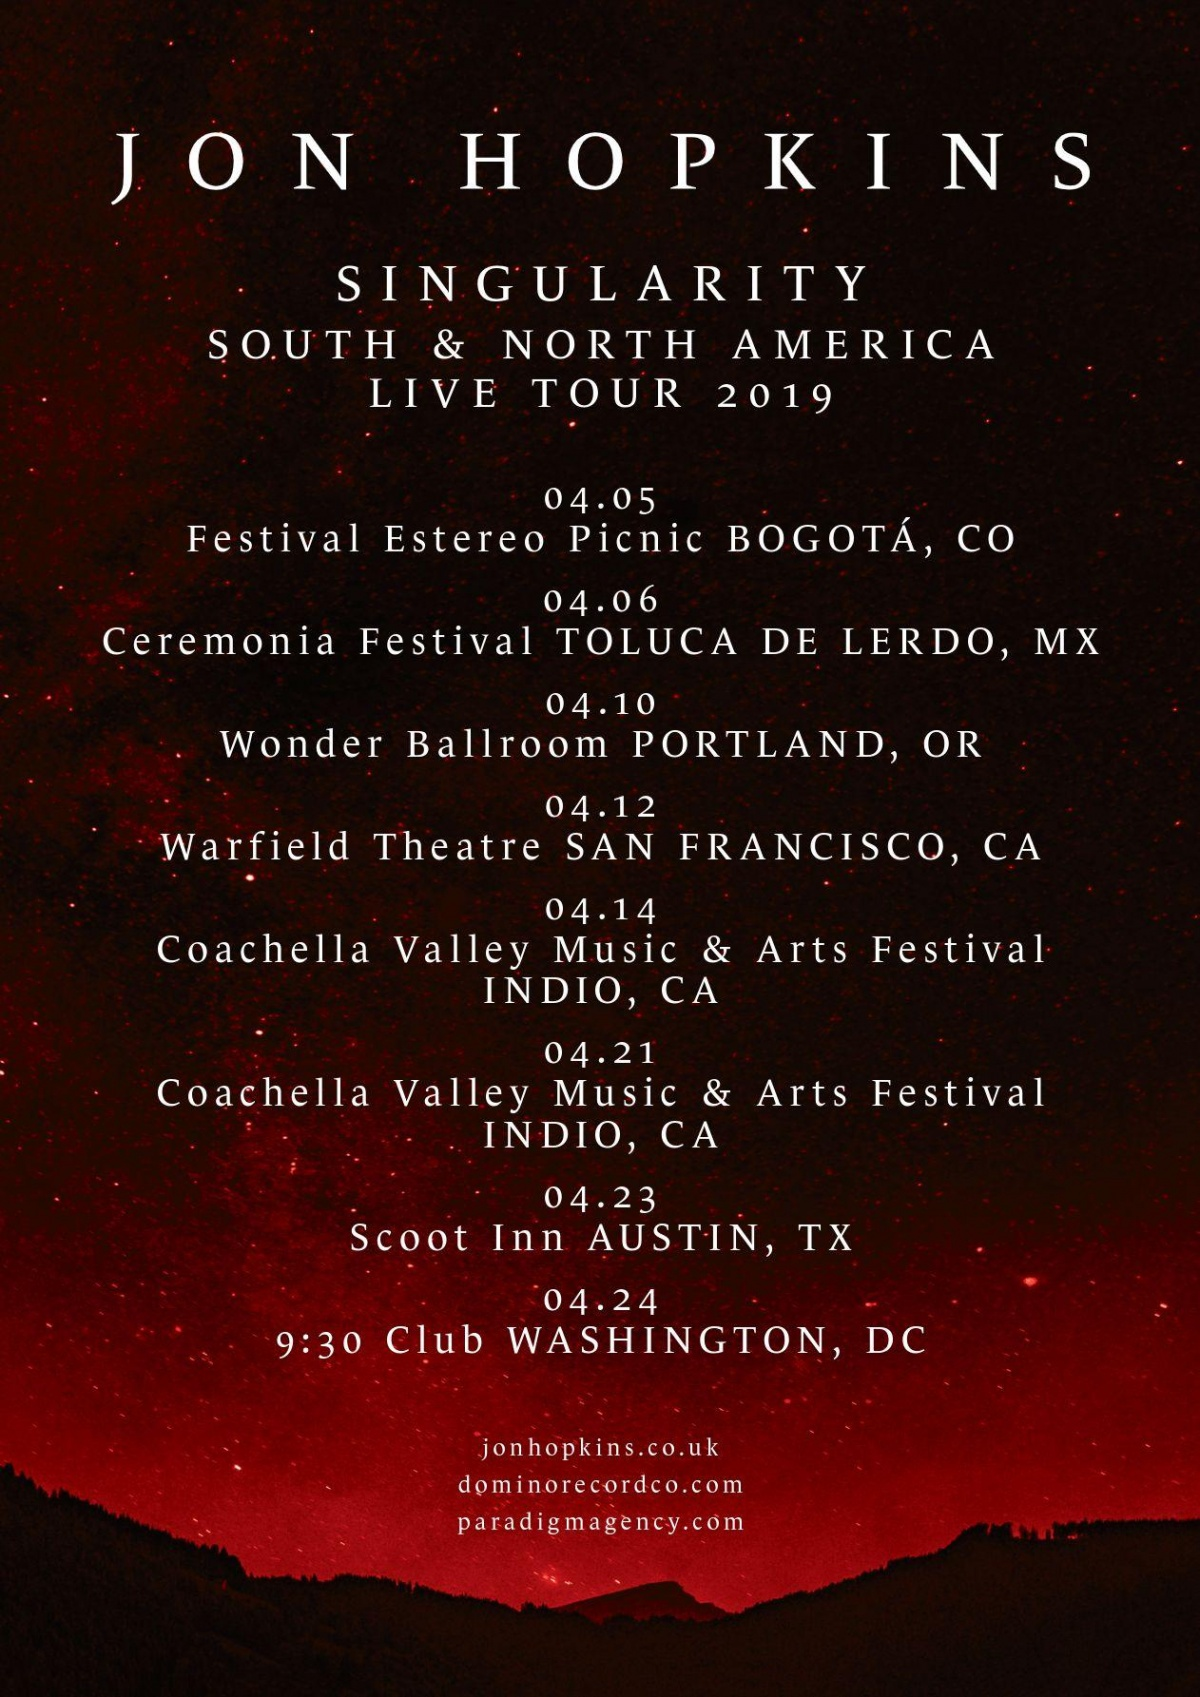 April tour dates for North and South America